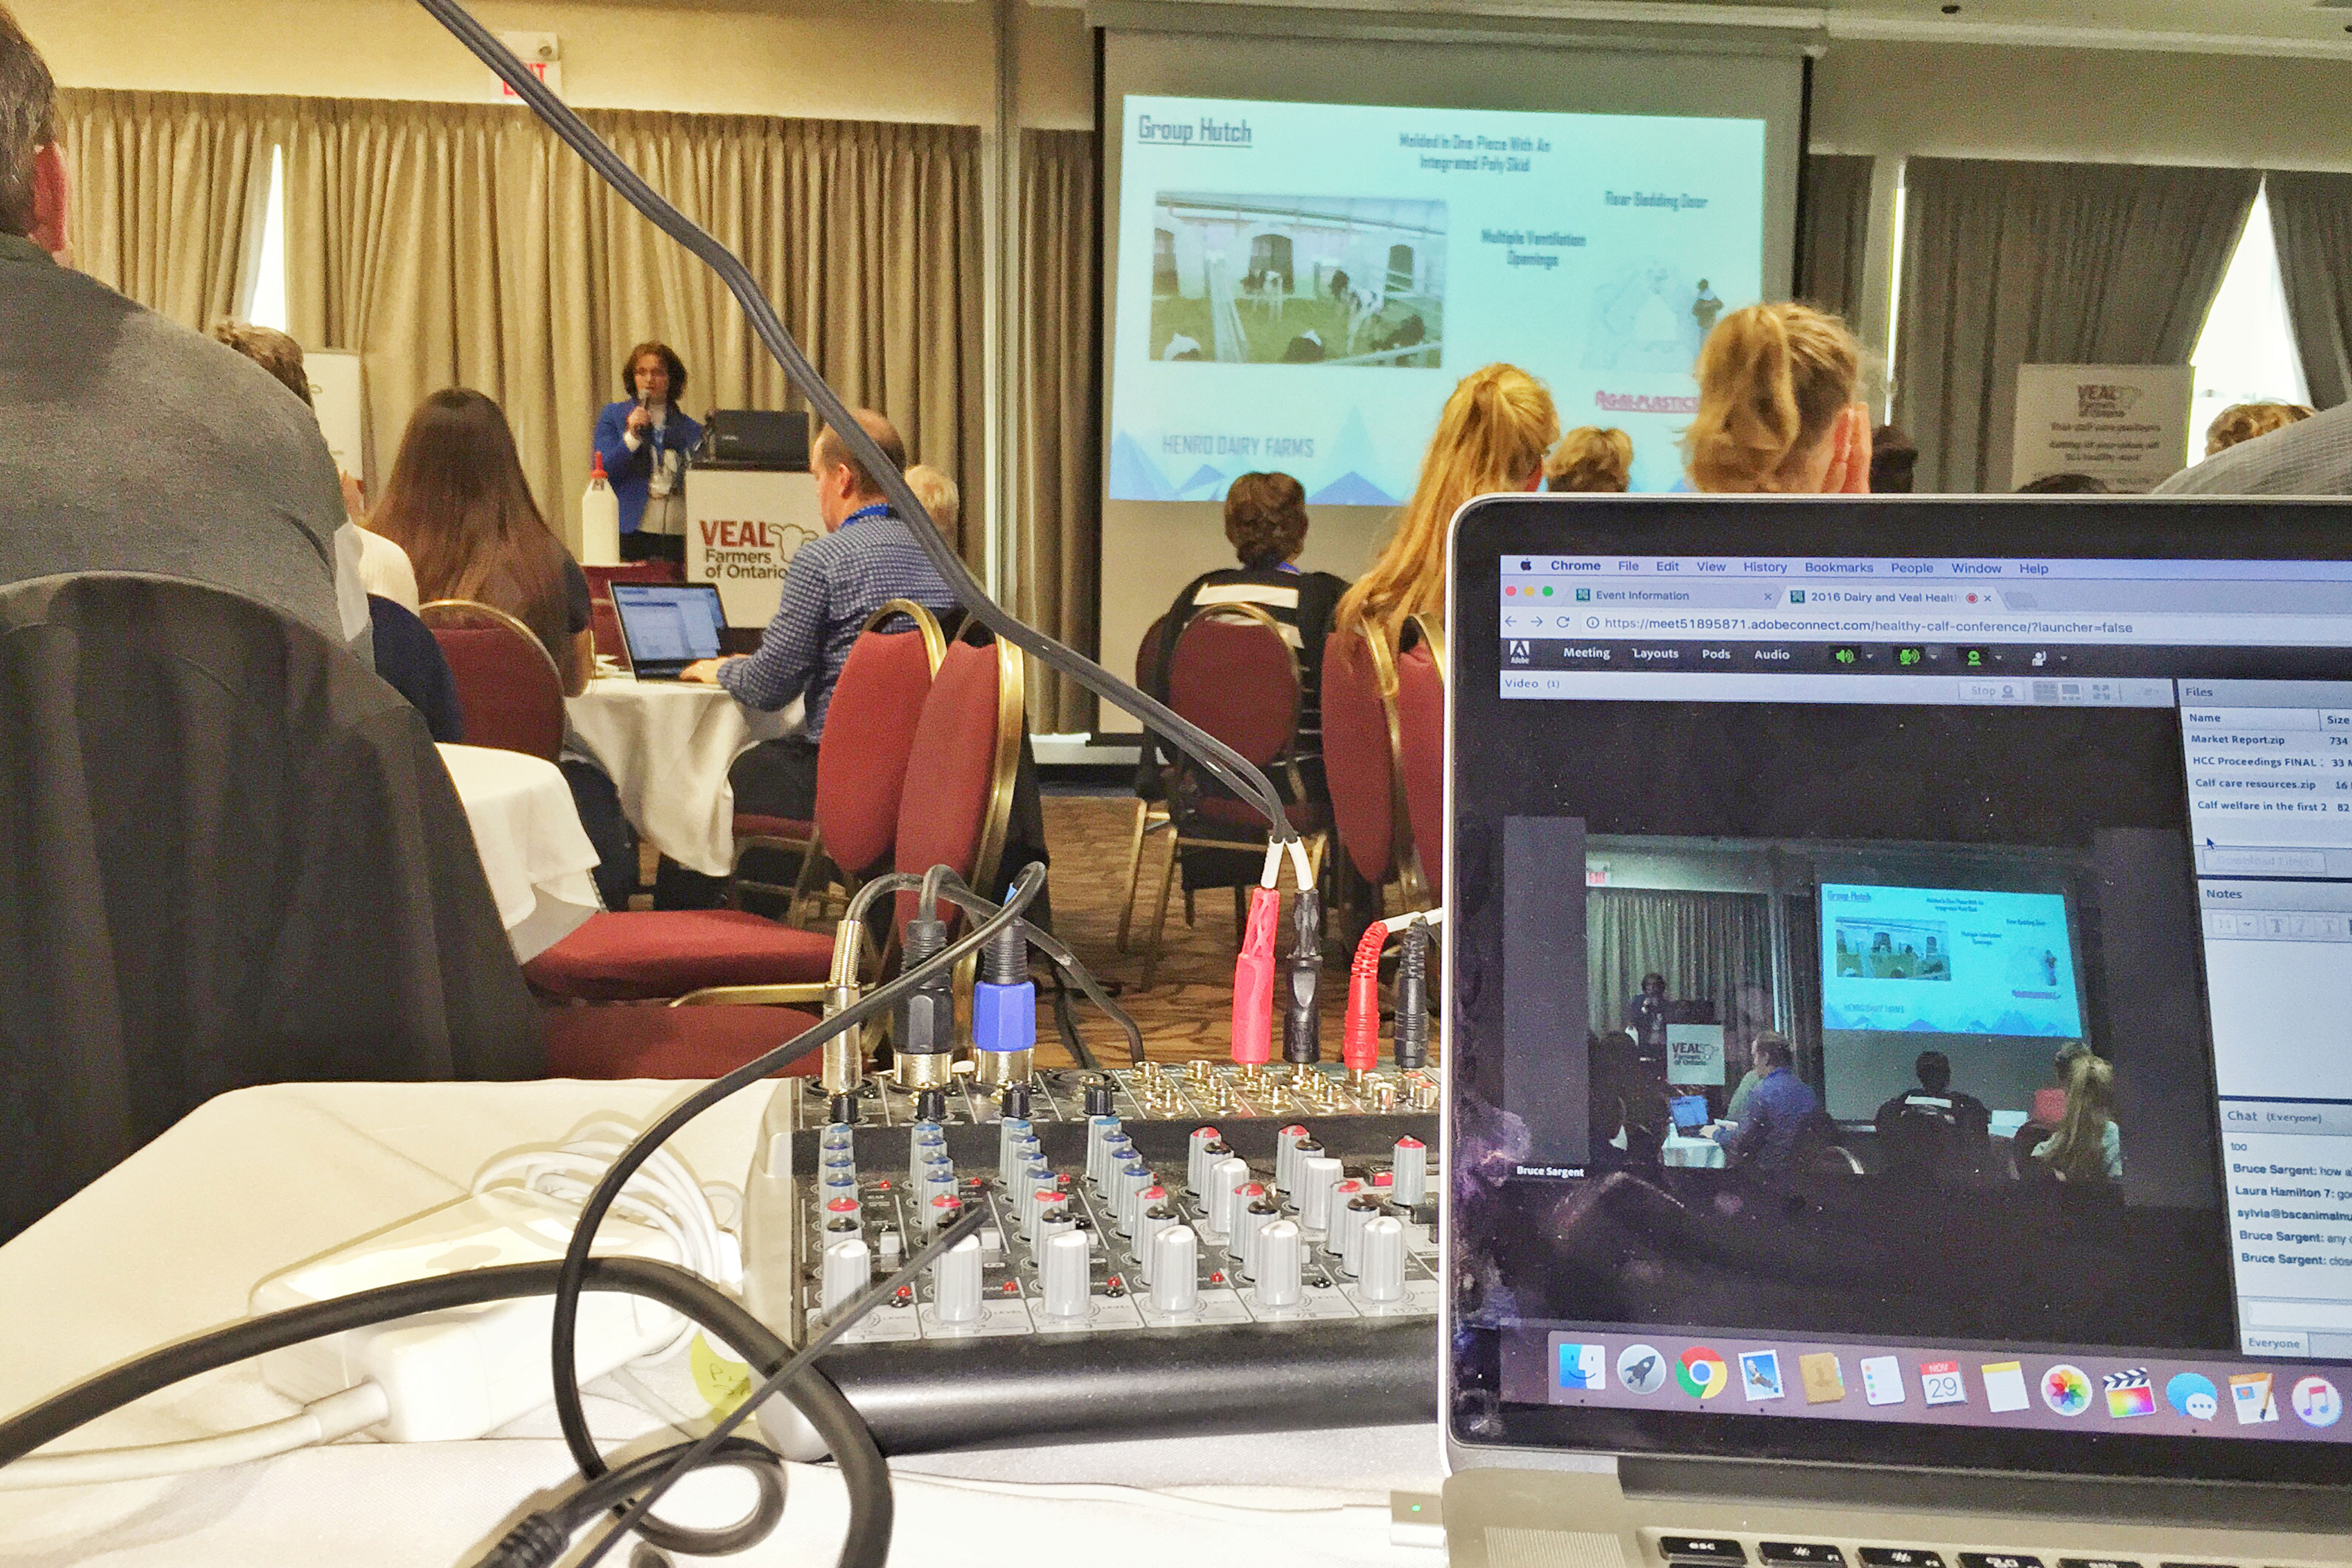 Live streaming from VFO meeting